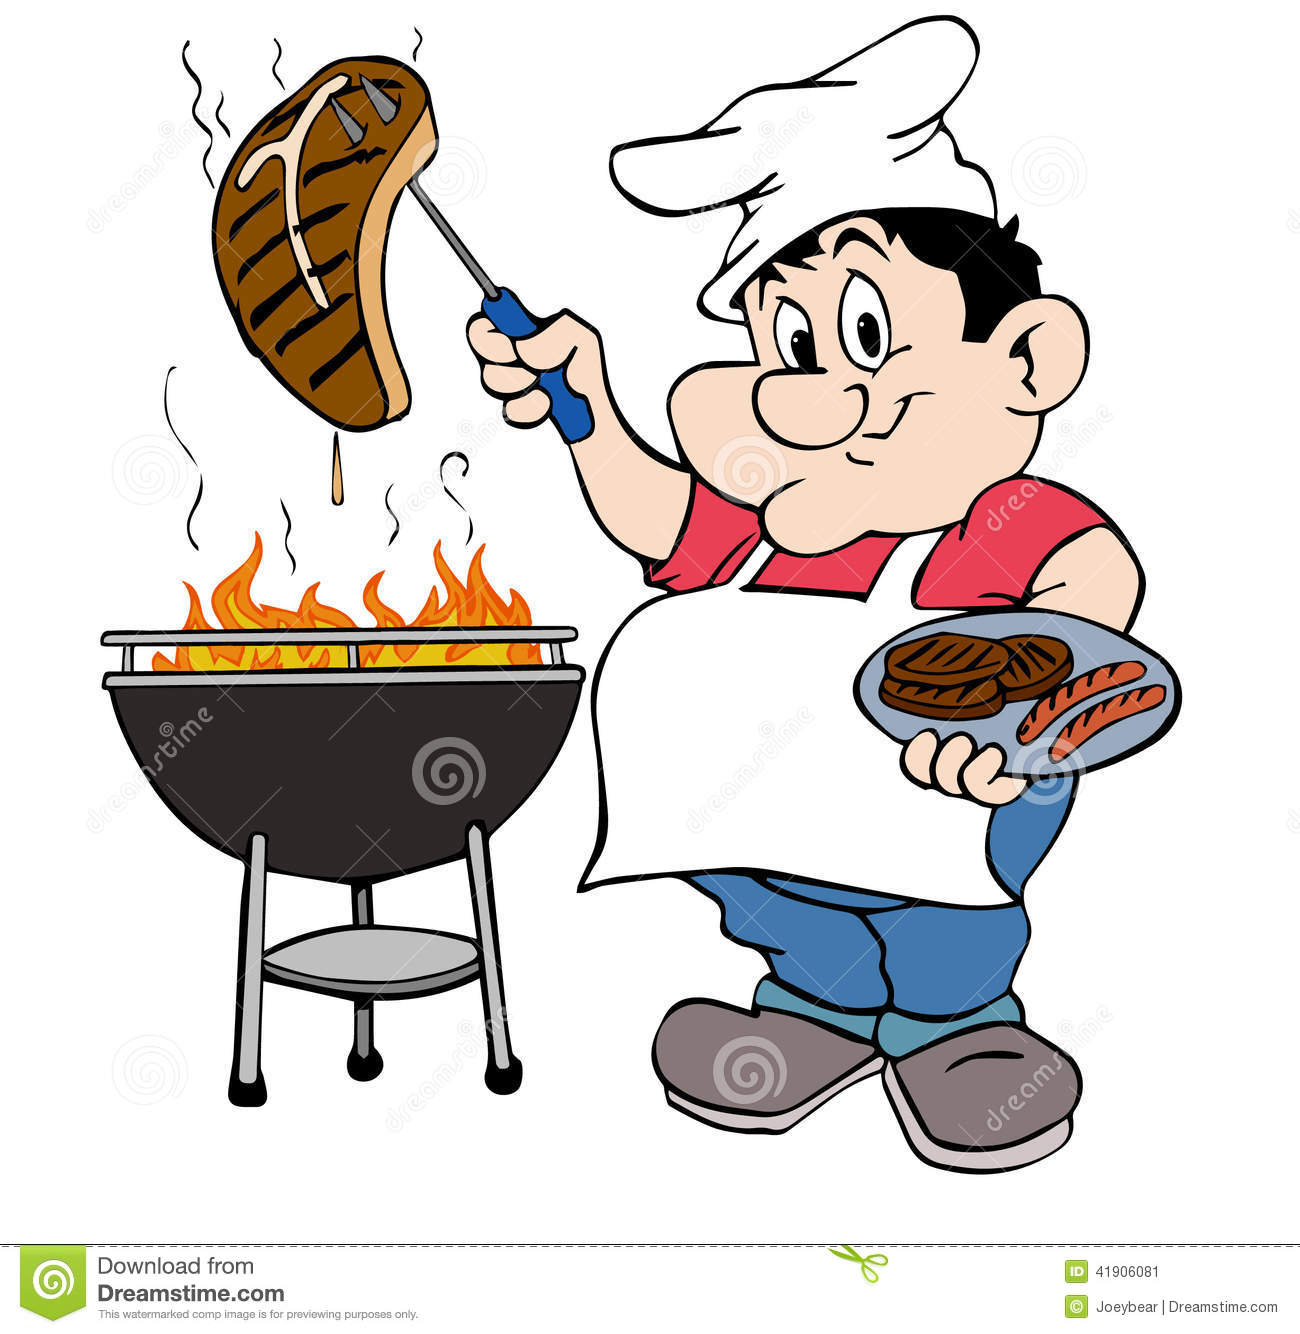 Clipart kostenlos jpg black and white library Cliparts kostenlos grillparty - ClipartFox jpg black and white library